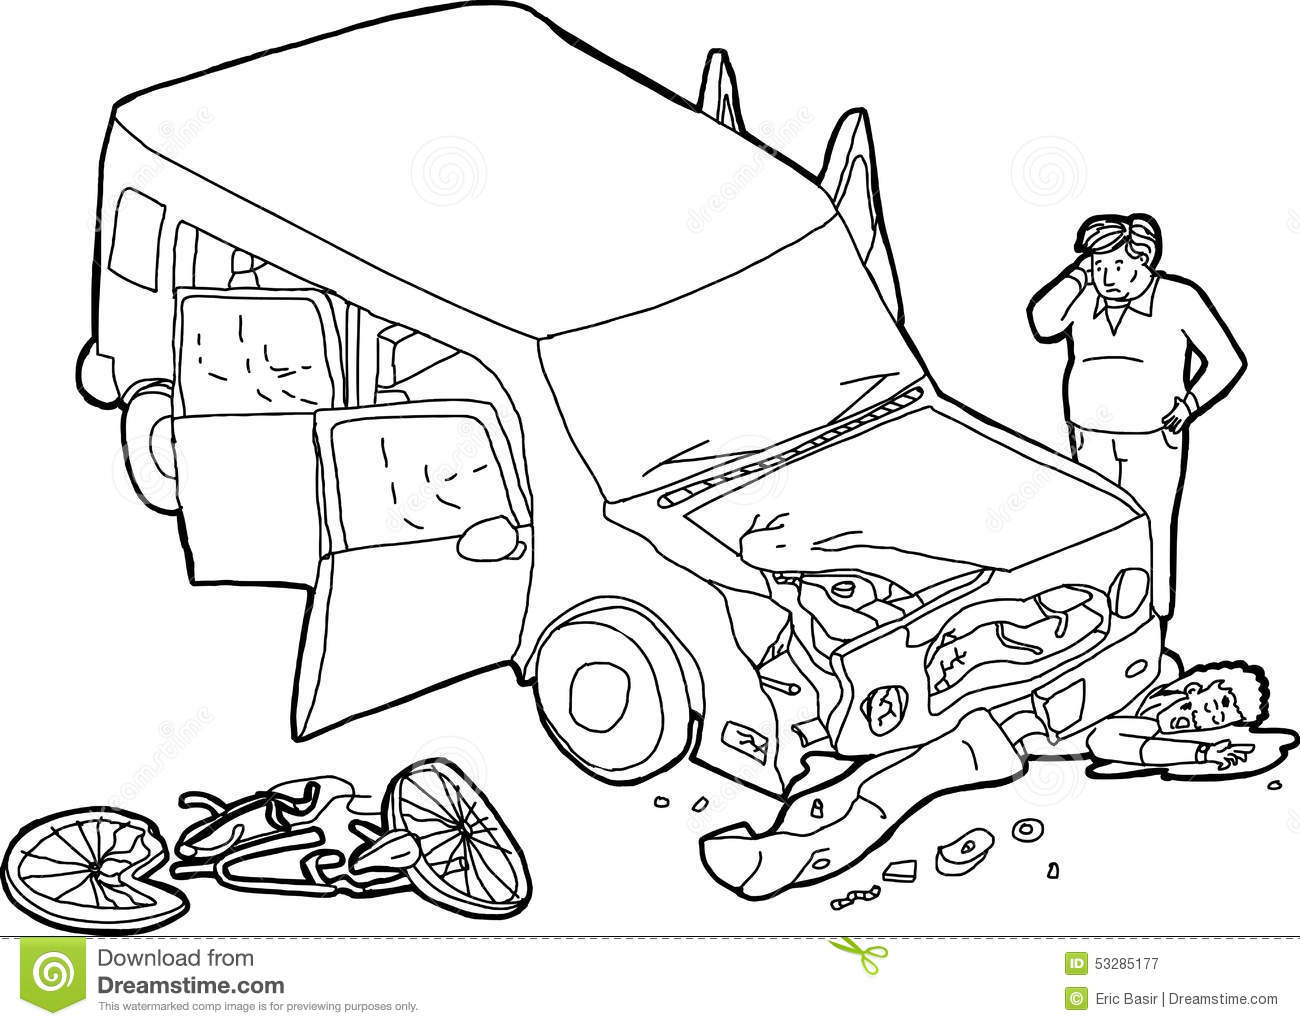 Outline Of Crashed Car And Bicyclist Stock Illustration ...